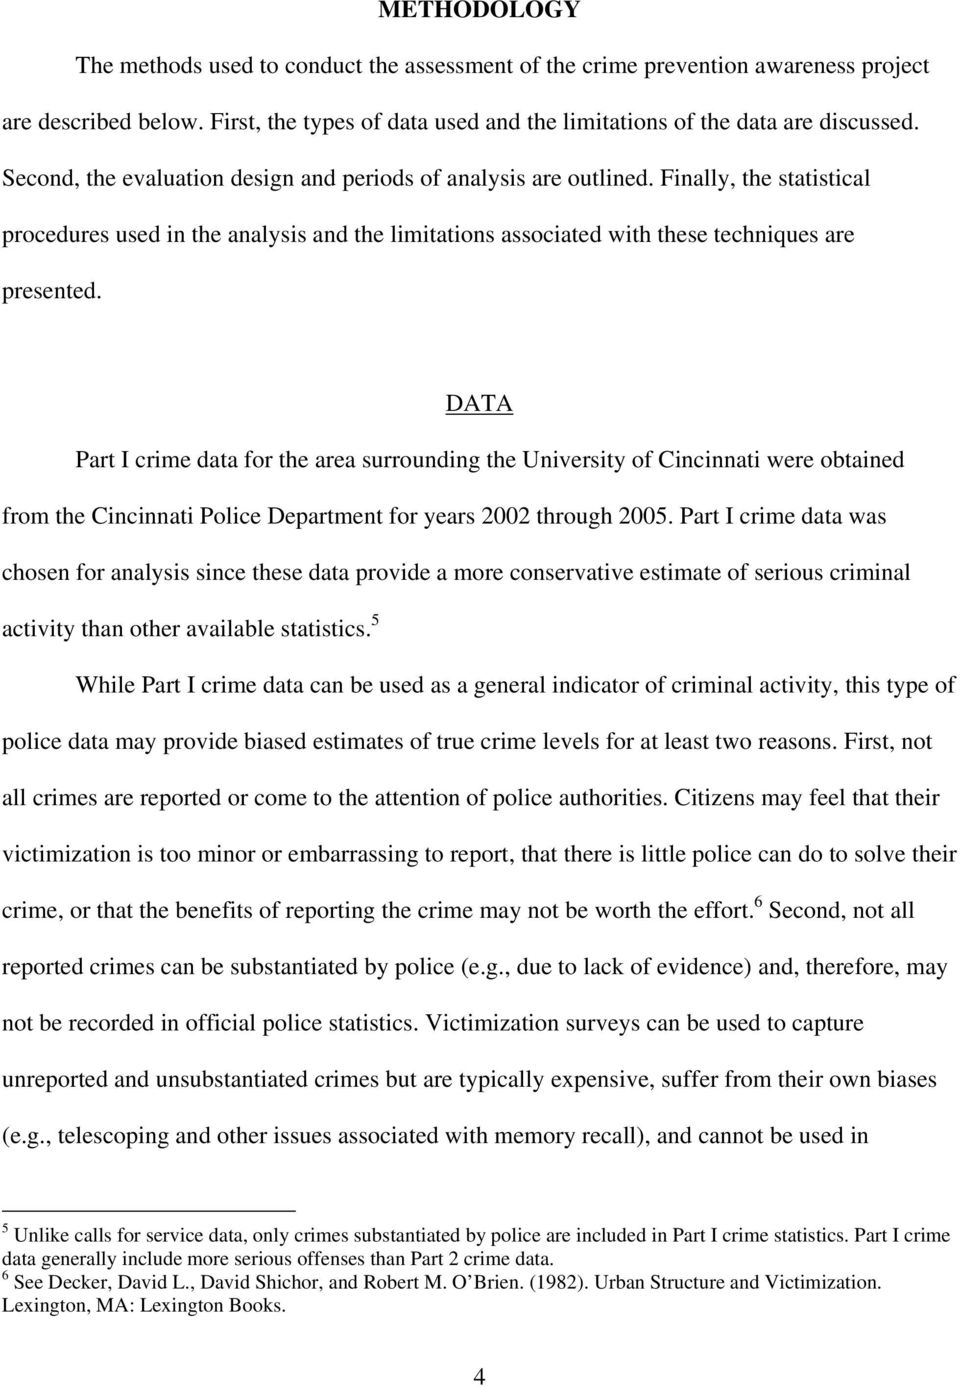 DATA Part I crime data for the area surrounding the University of Cincinnati were obtained from the Cincinnati Police Department for years 2002 through 2005.